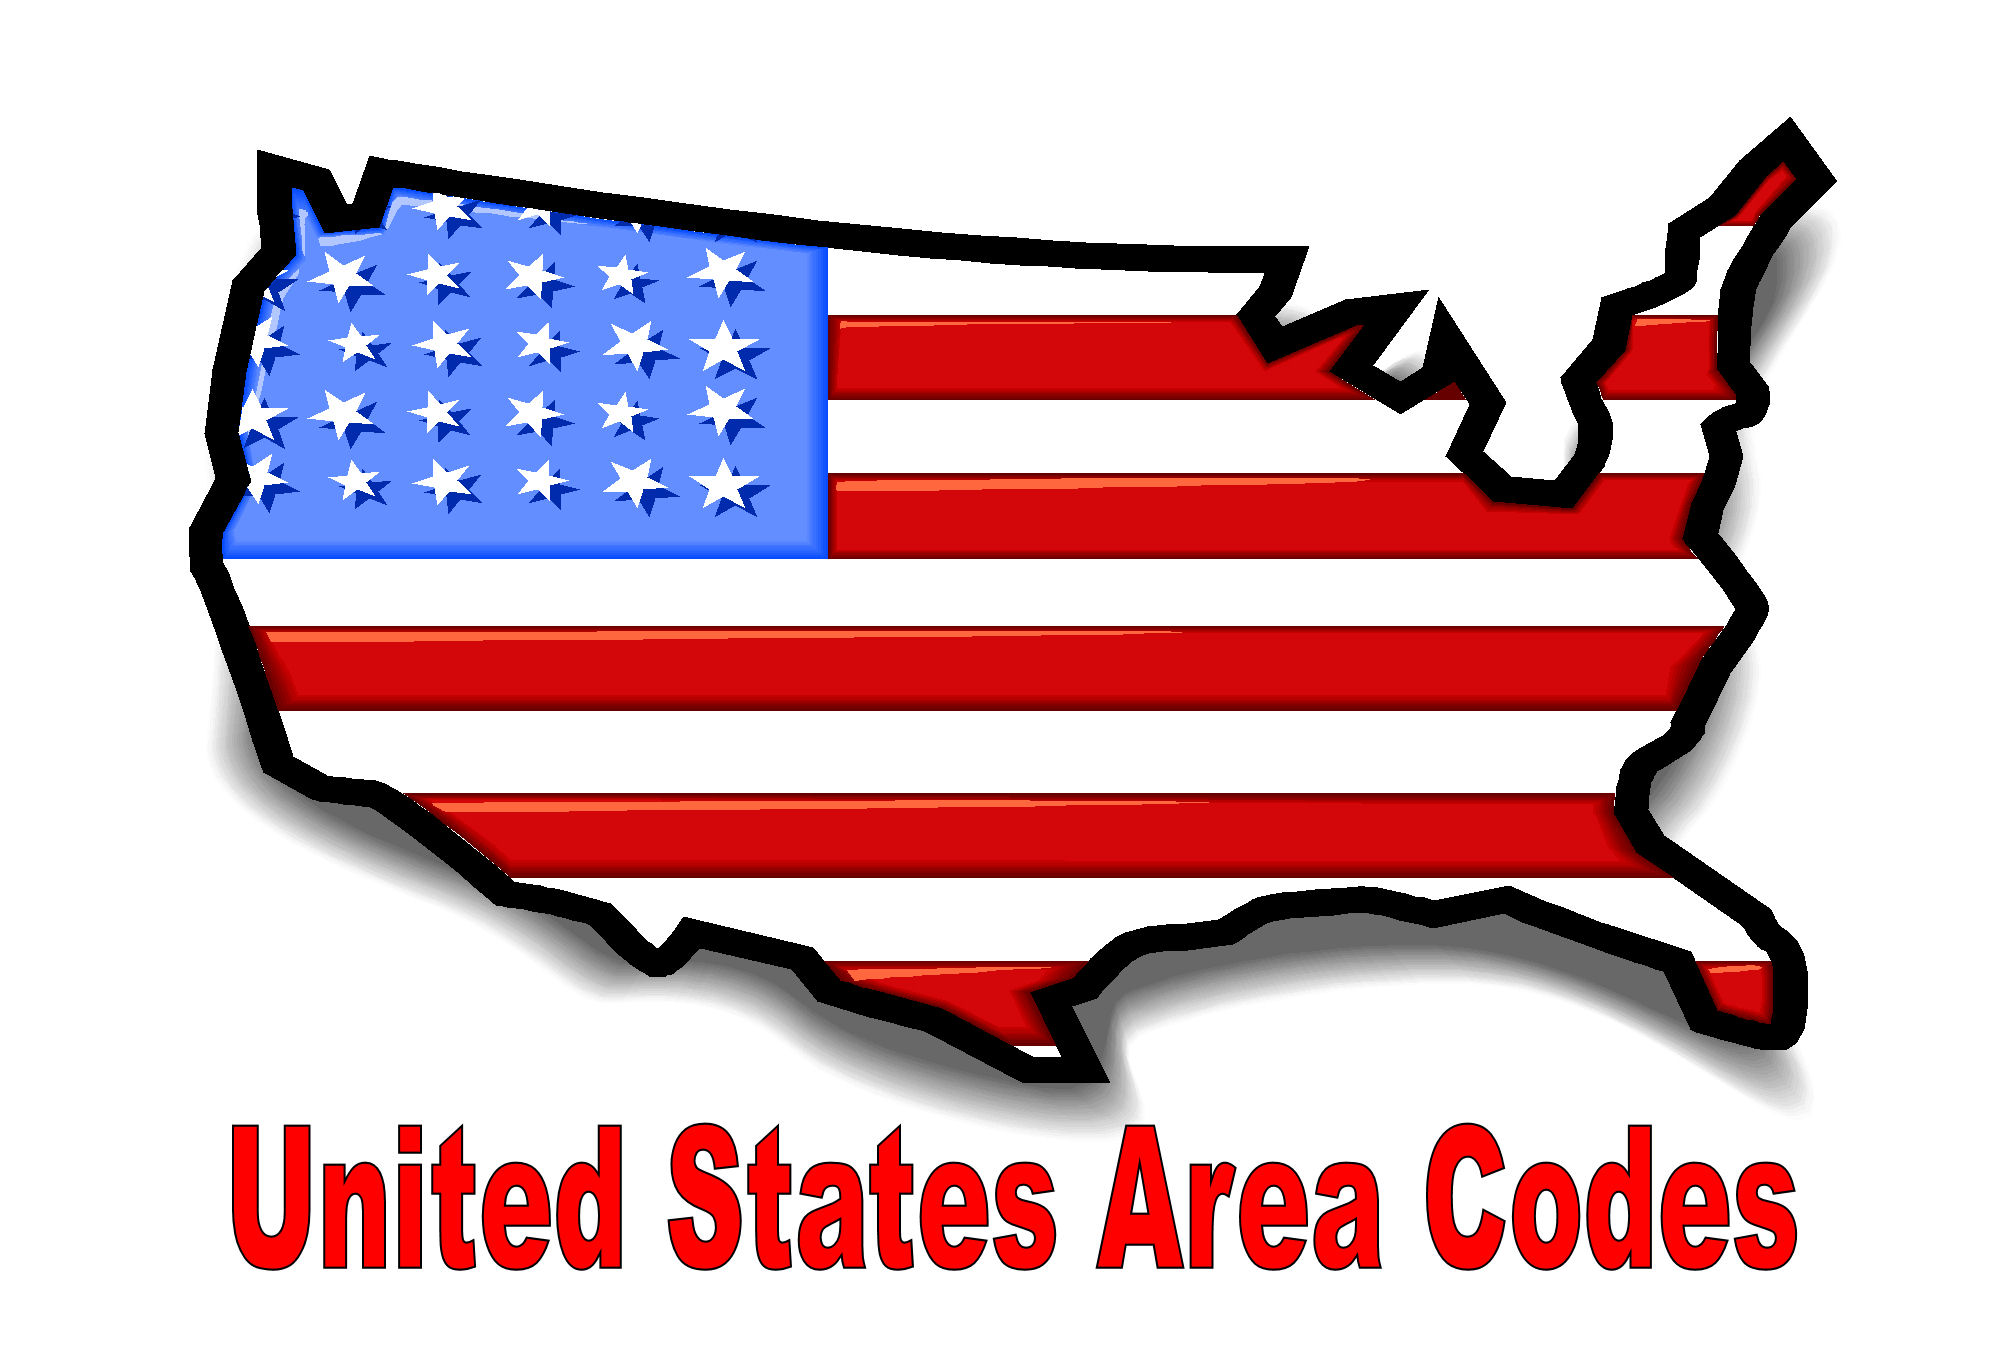 Printable area code listing by State and Number from UnitedStates-AreaCodes.com